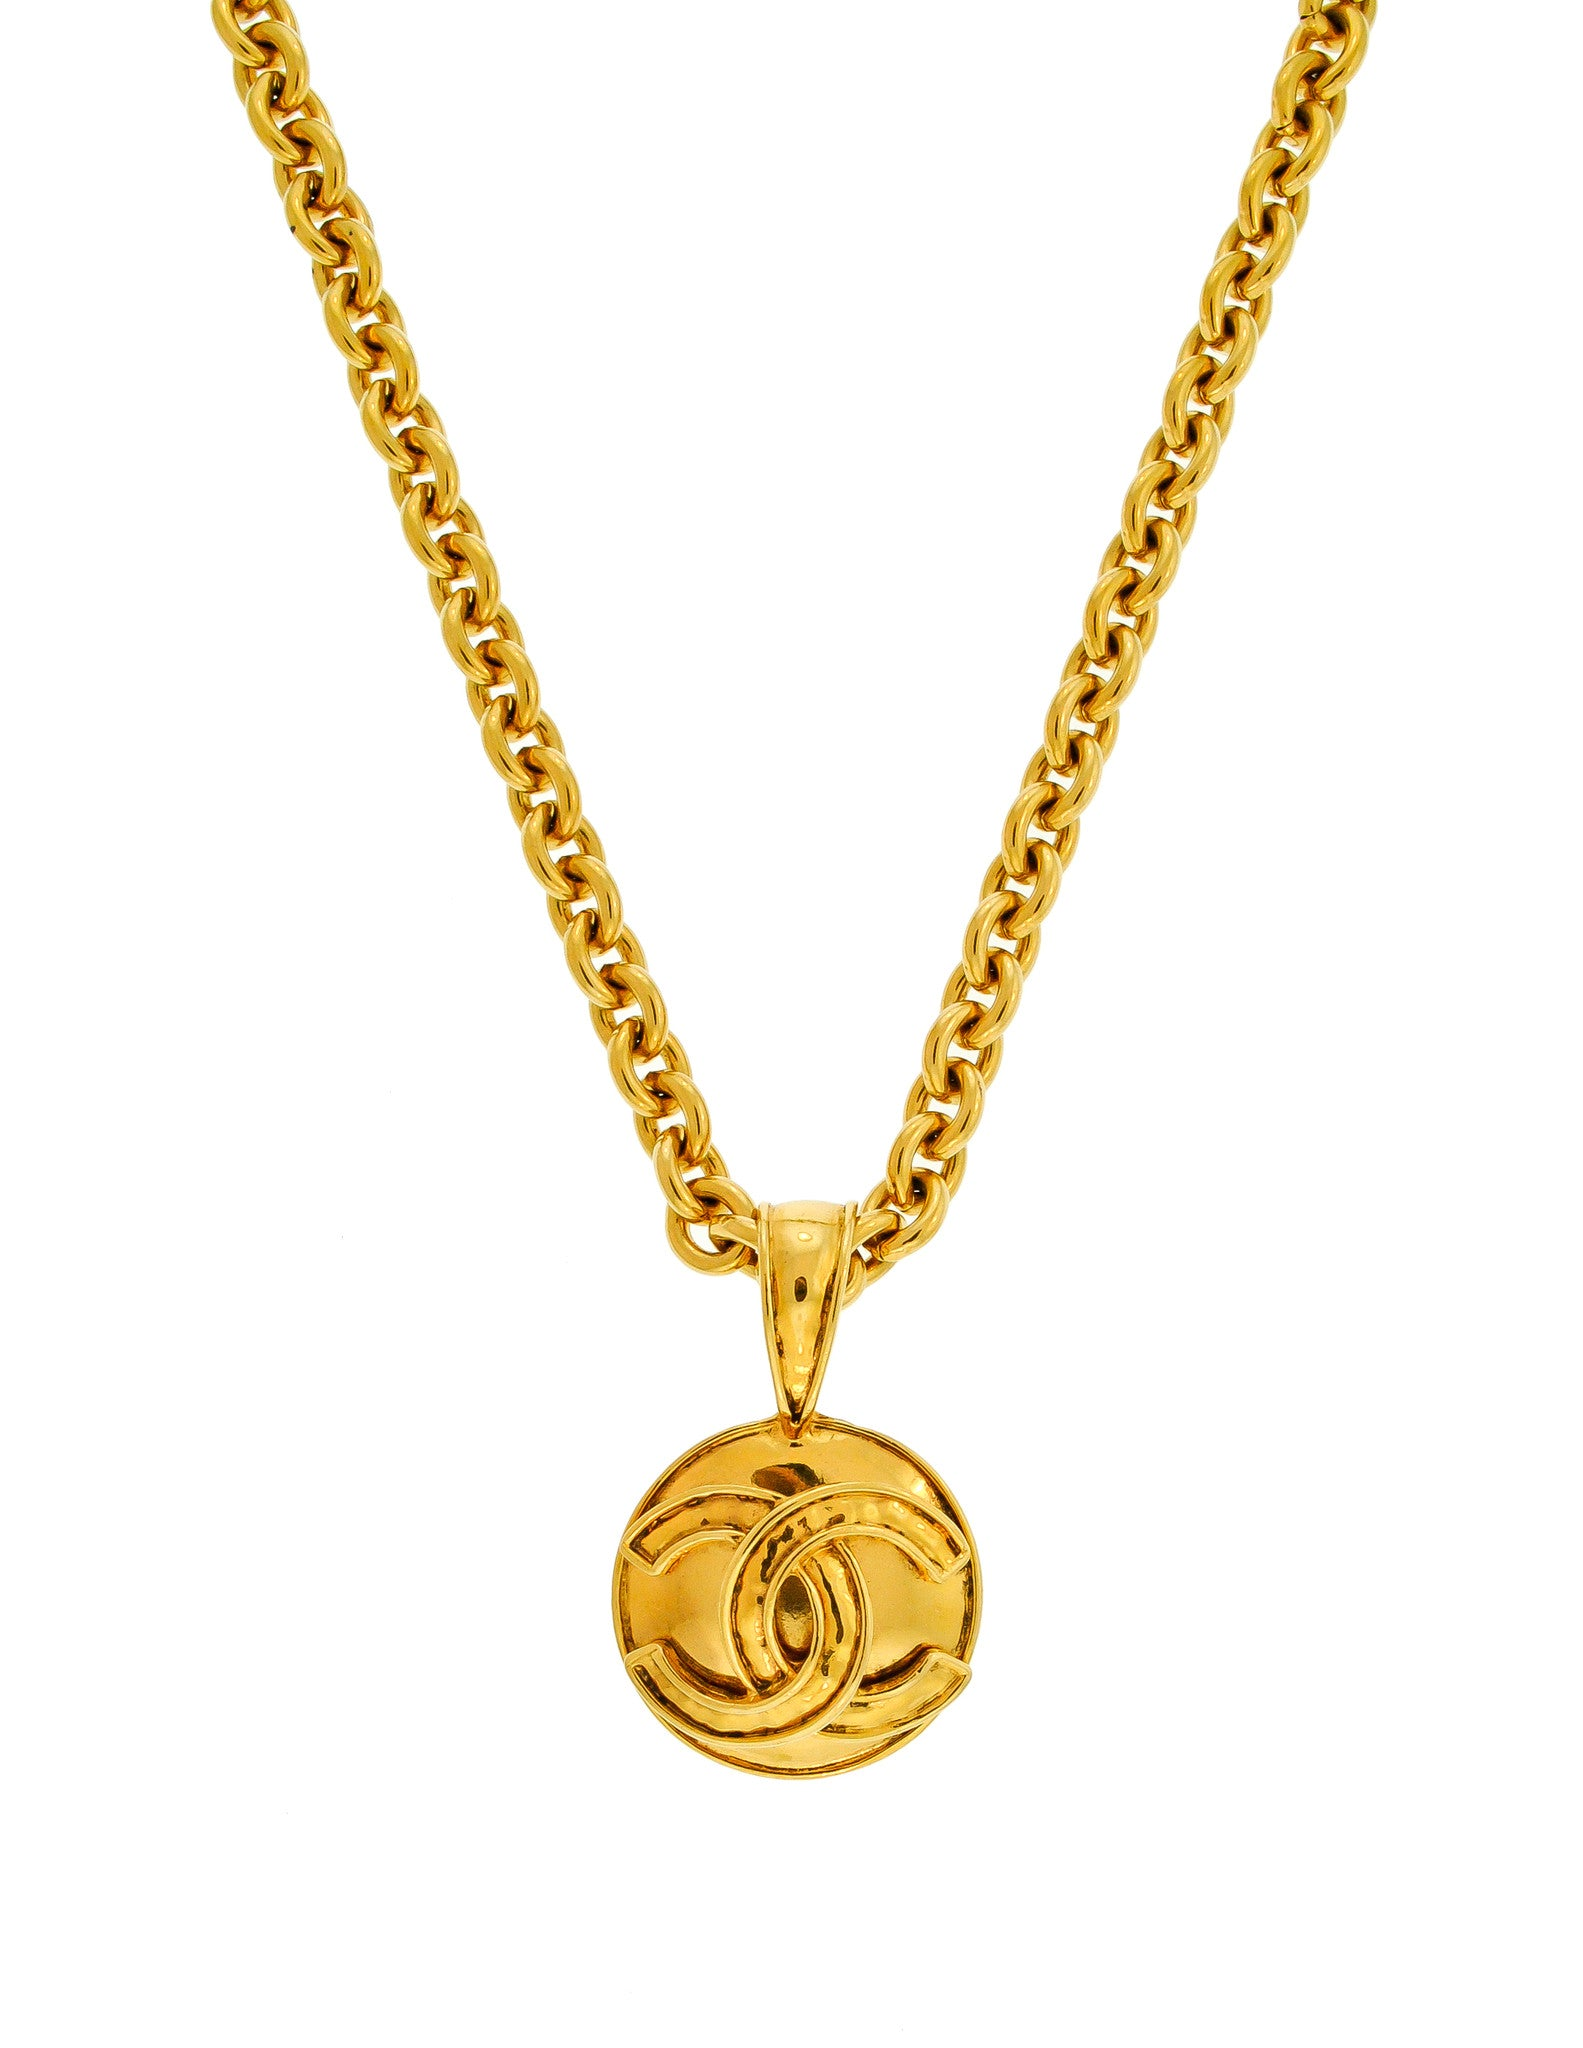 5bd4b2ebfeb0f0 Chanel Vintage Gold CC Logo Pendant Necklace - Amarcord Vintage Fashion - 1